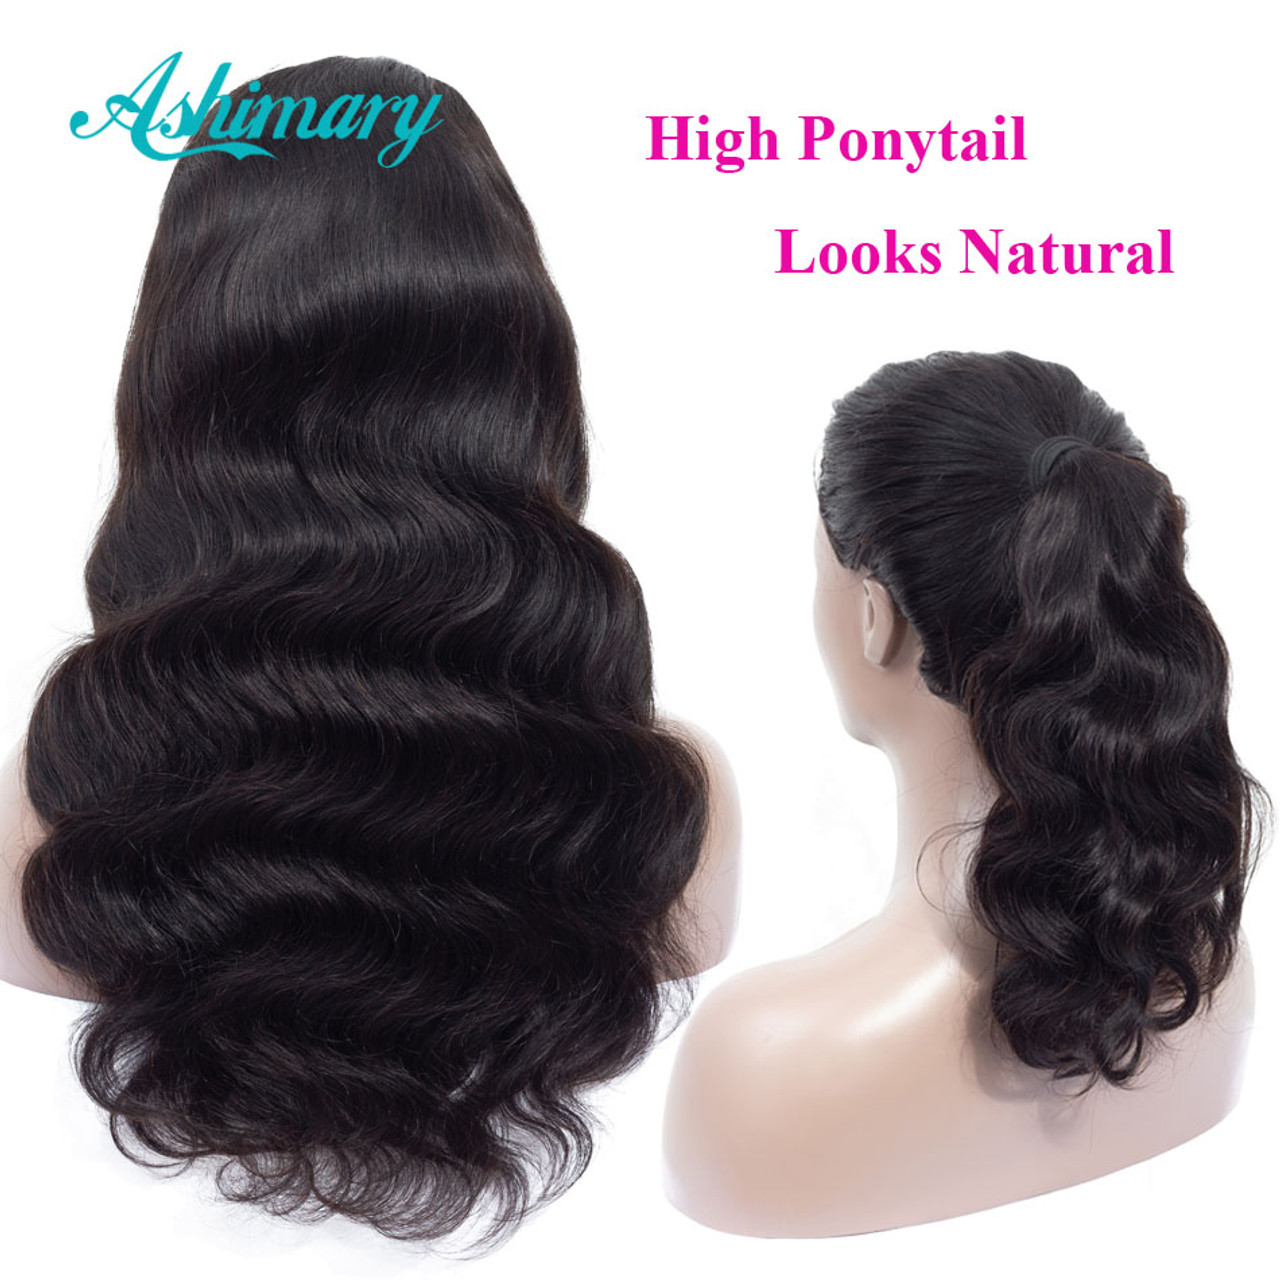 Ashimary Lace Front Human Hair Wigs 4x4 Closure Lace Wigs Remy Brazilian Hair Body Wave Wig Lace Front Wig With Baby Hair Onshopdeals Com